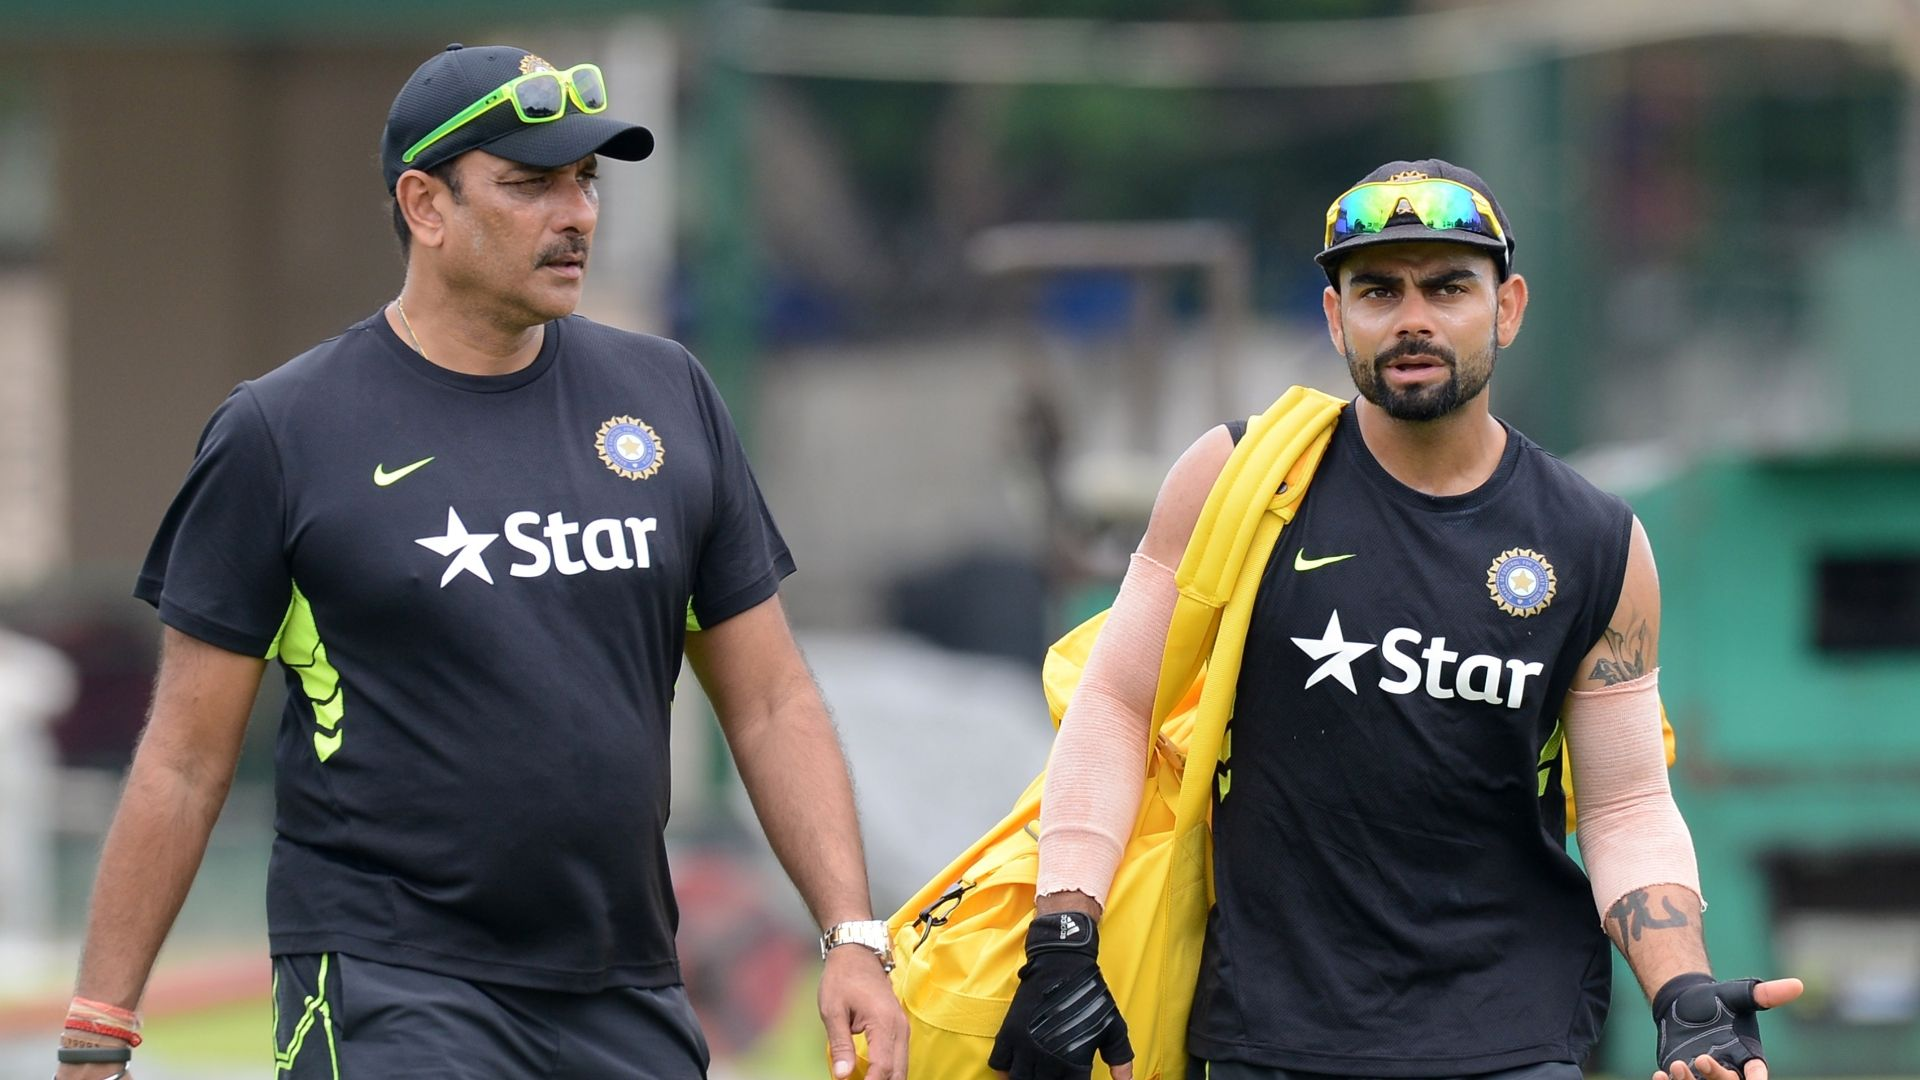 Shastri wants focus back on players after recent episodes